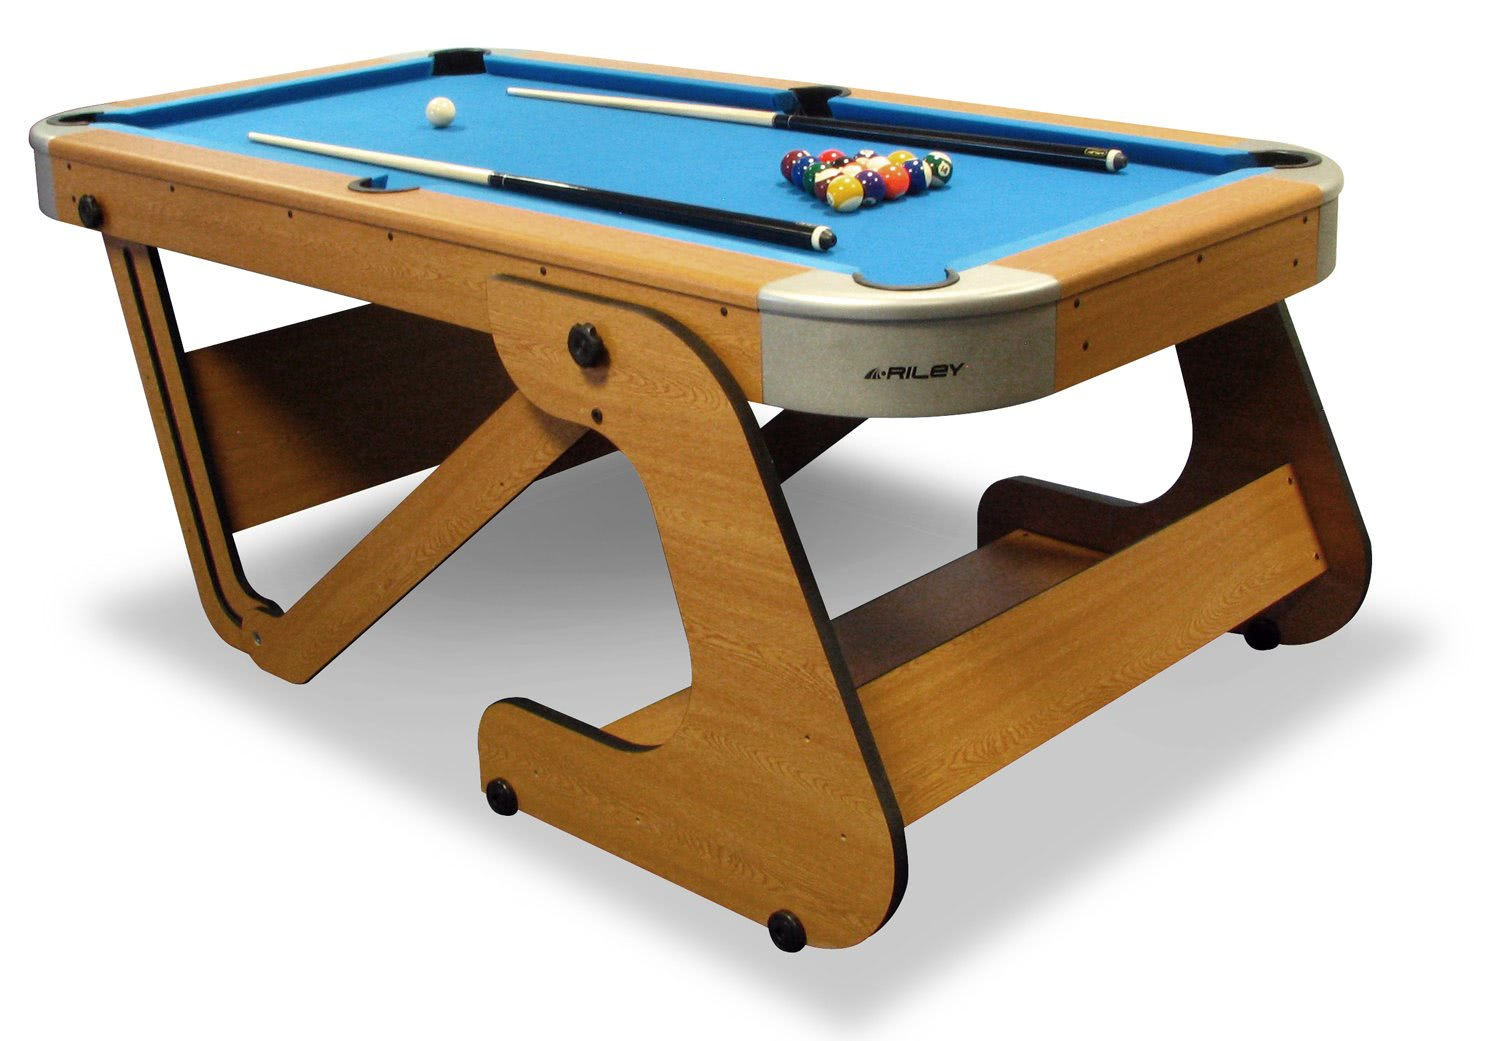 Riley Folding Pool Table RPTF Liberty Games - Six foot pool table